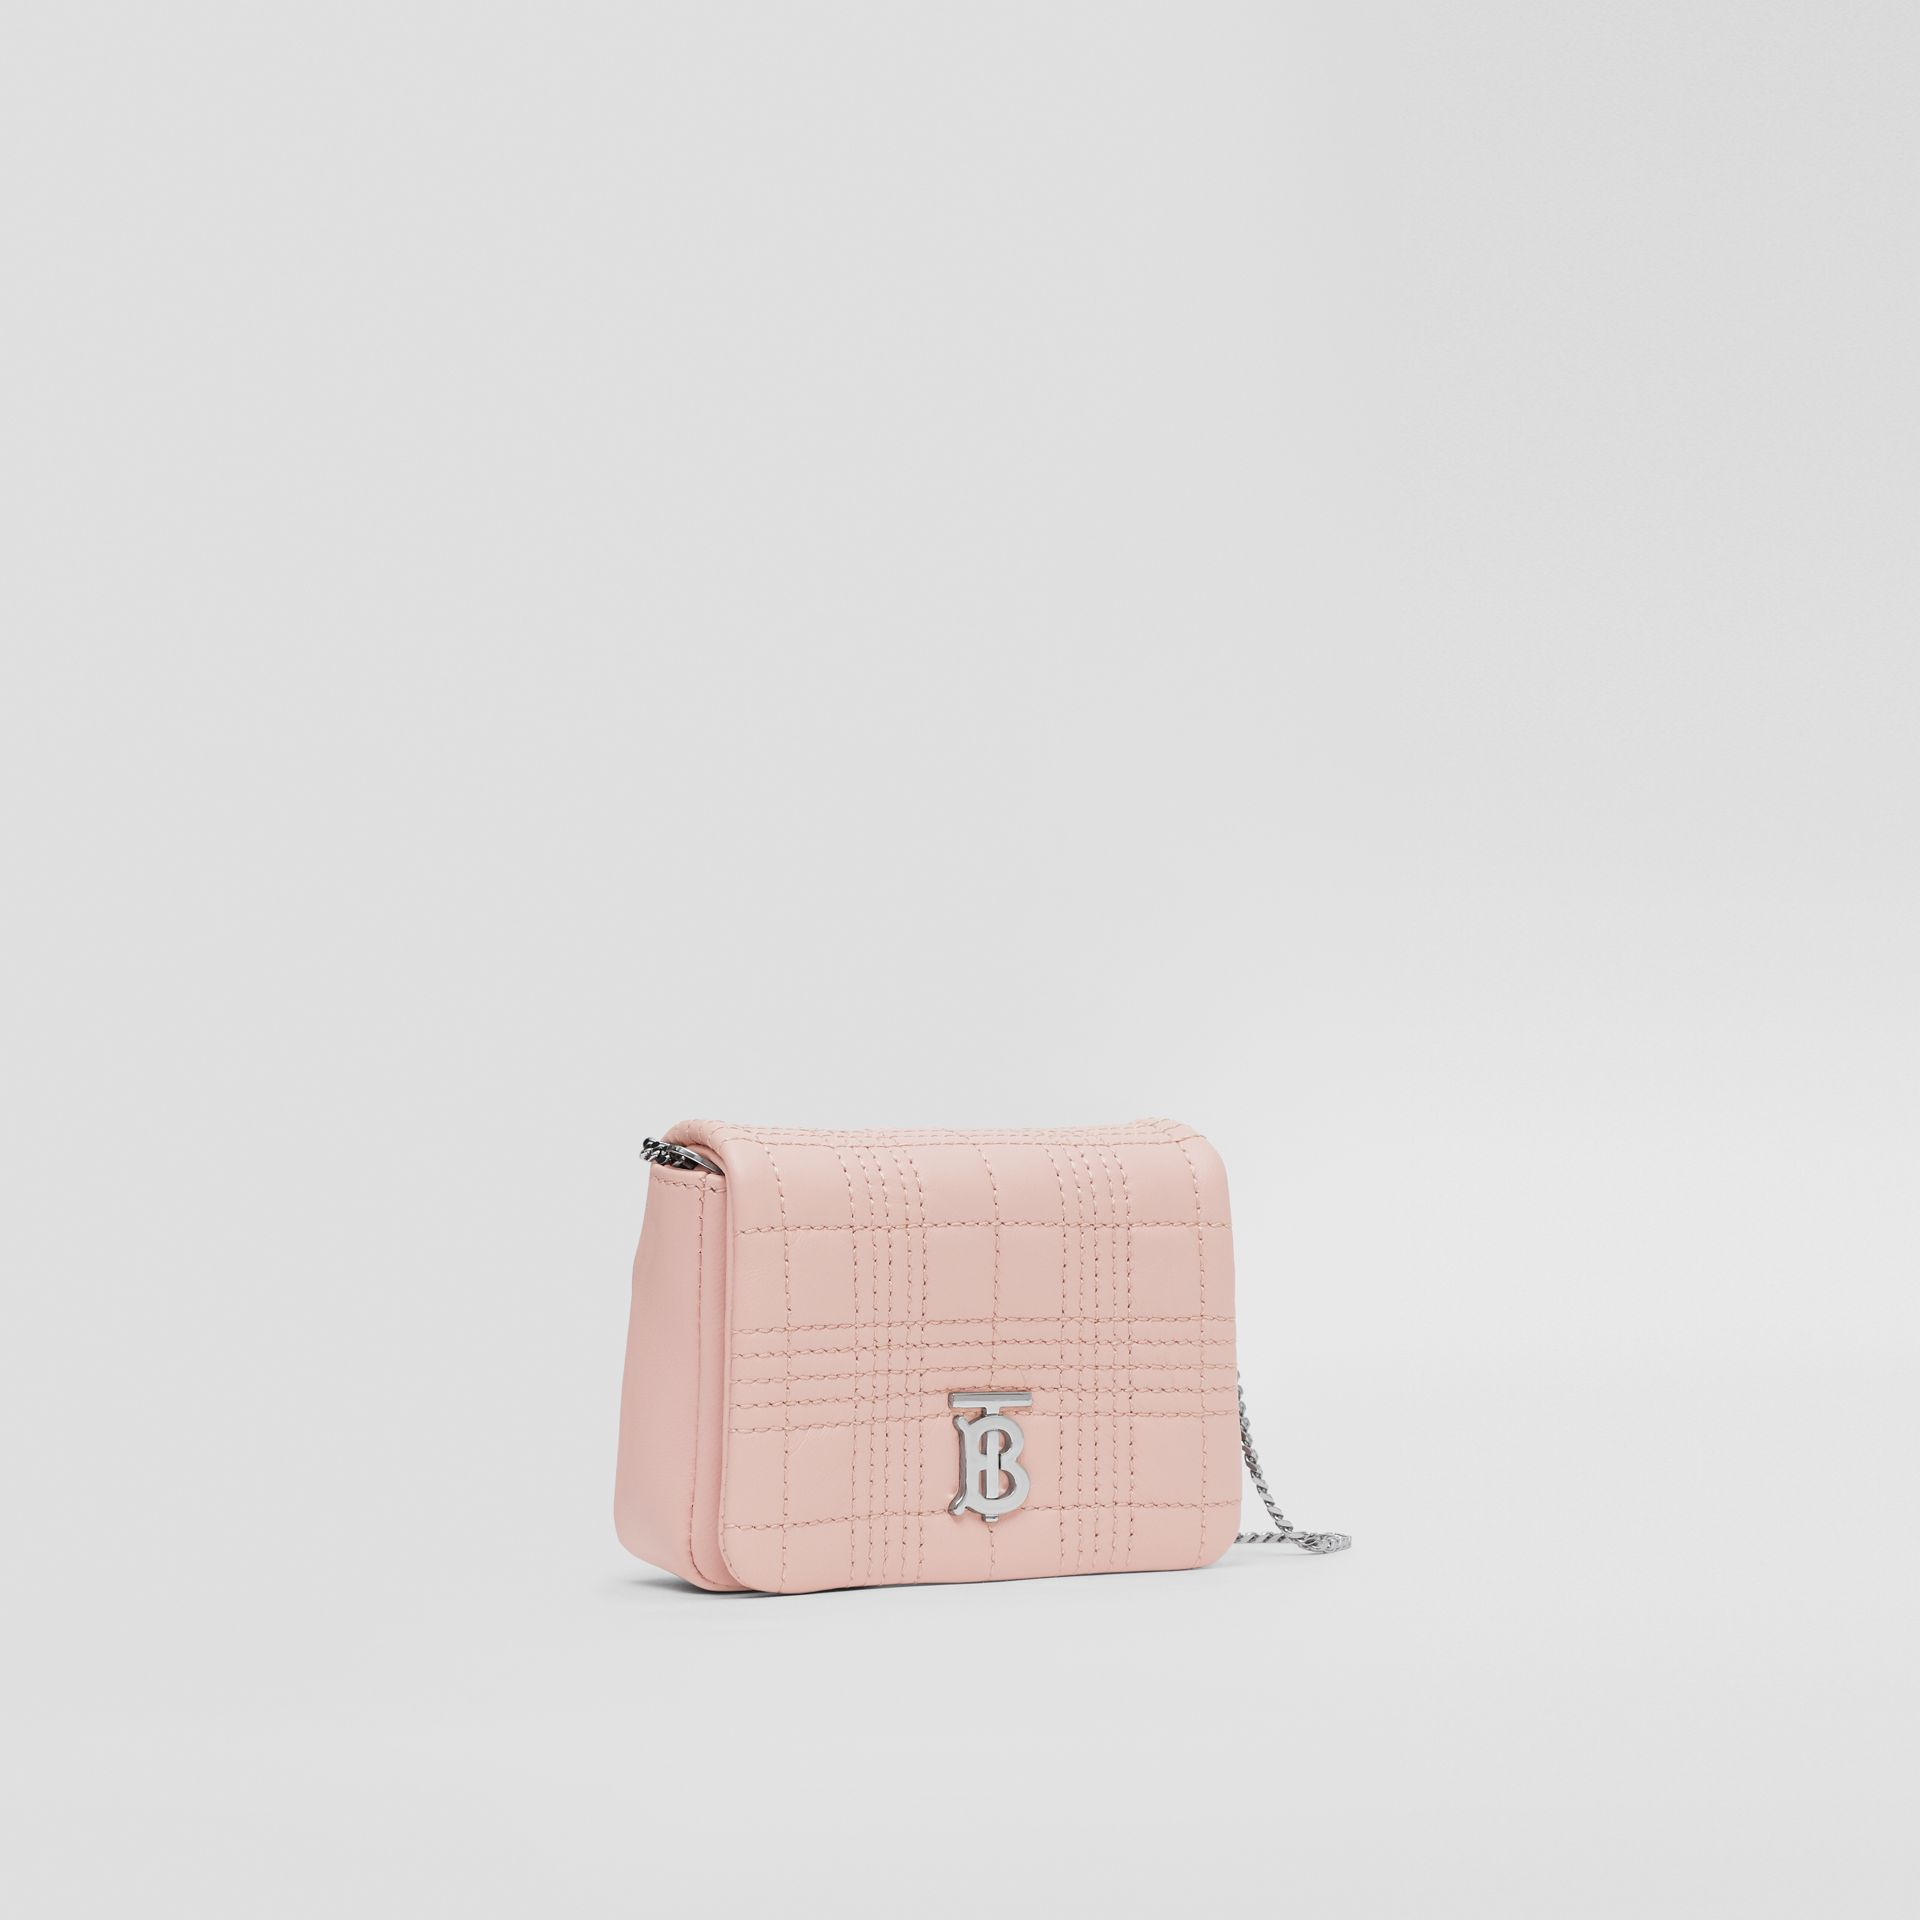 Micro Quilted Lambskin Lola Bag in Blush Pink - Women | Burberry - gallery image 6